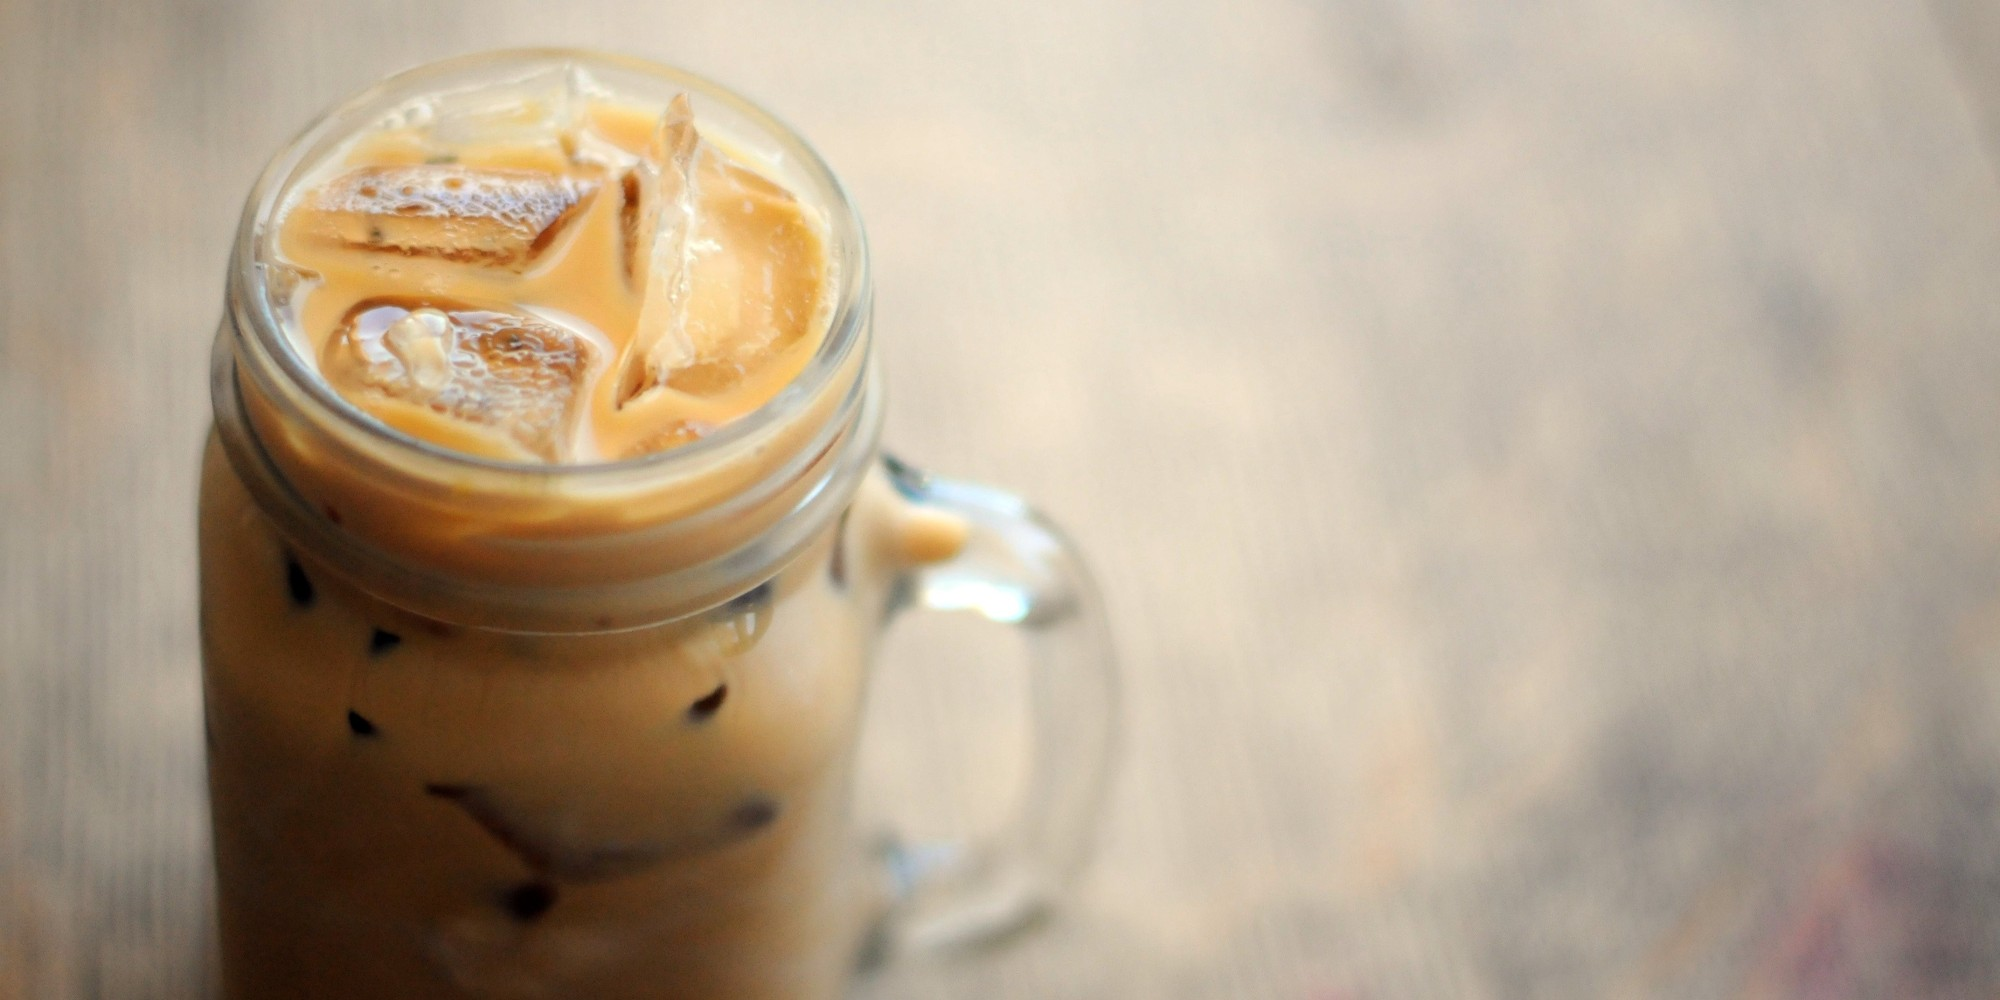 This Is How To Make Iced Coffee Taste Like The Pros